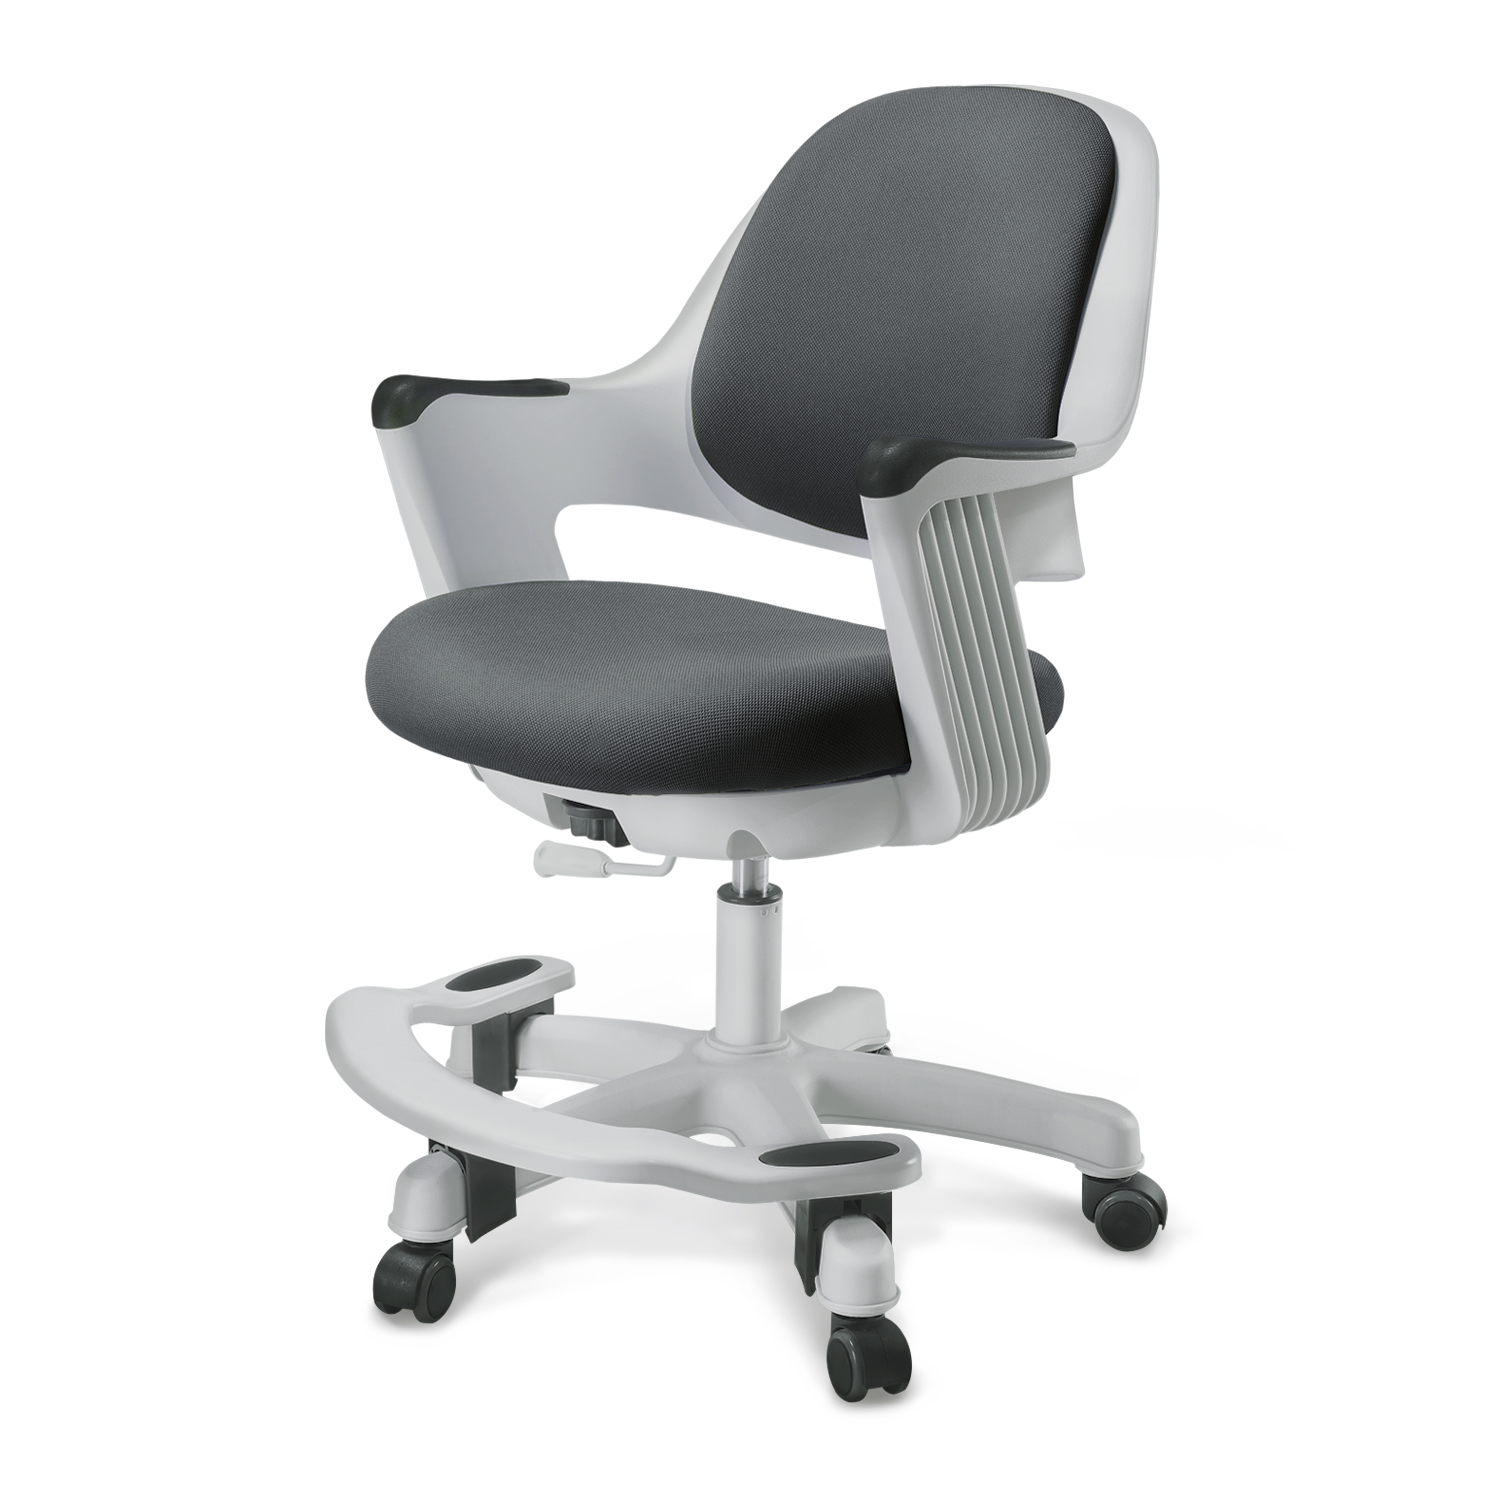 SitRite Children Chair Gray Grayscale image